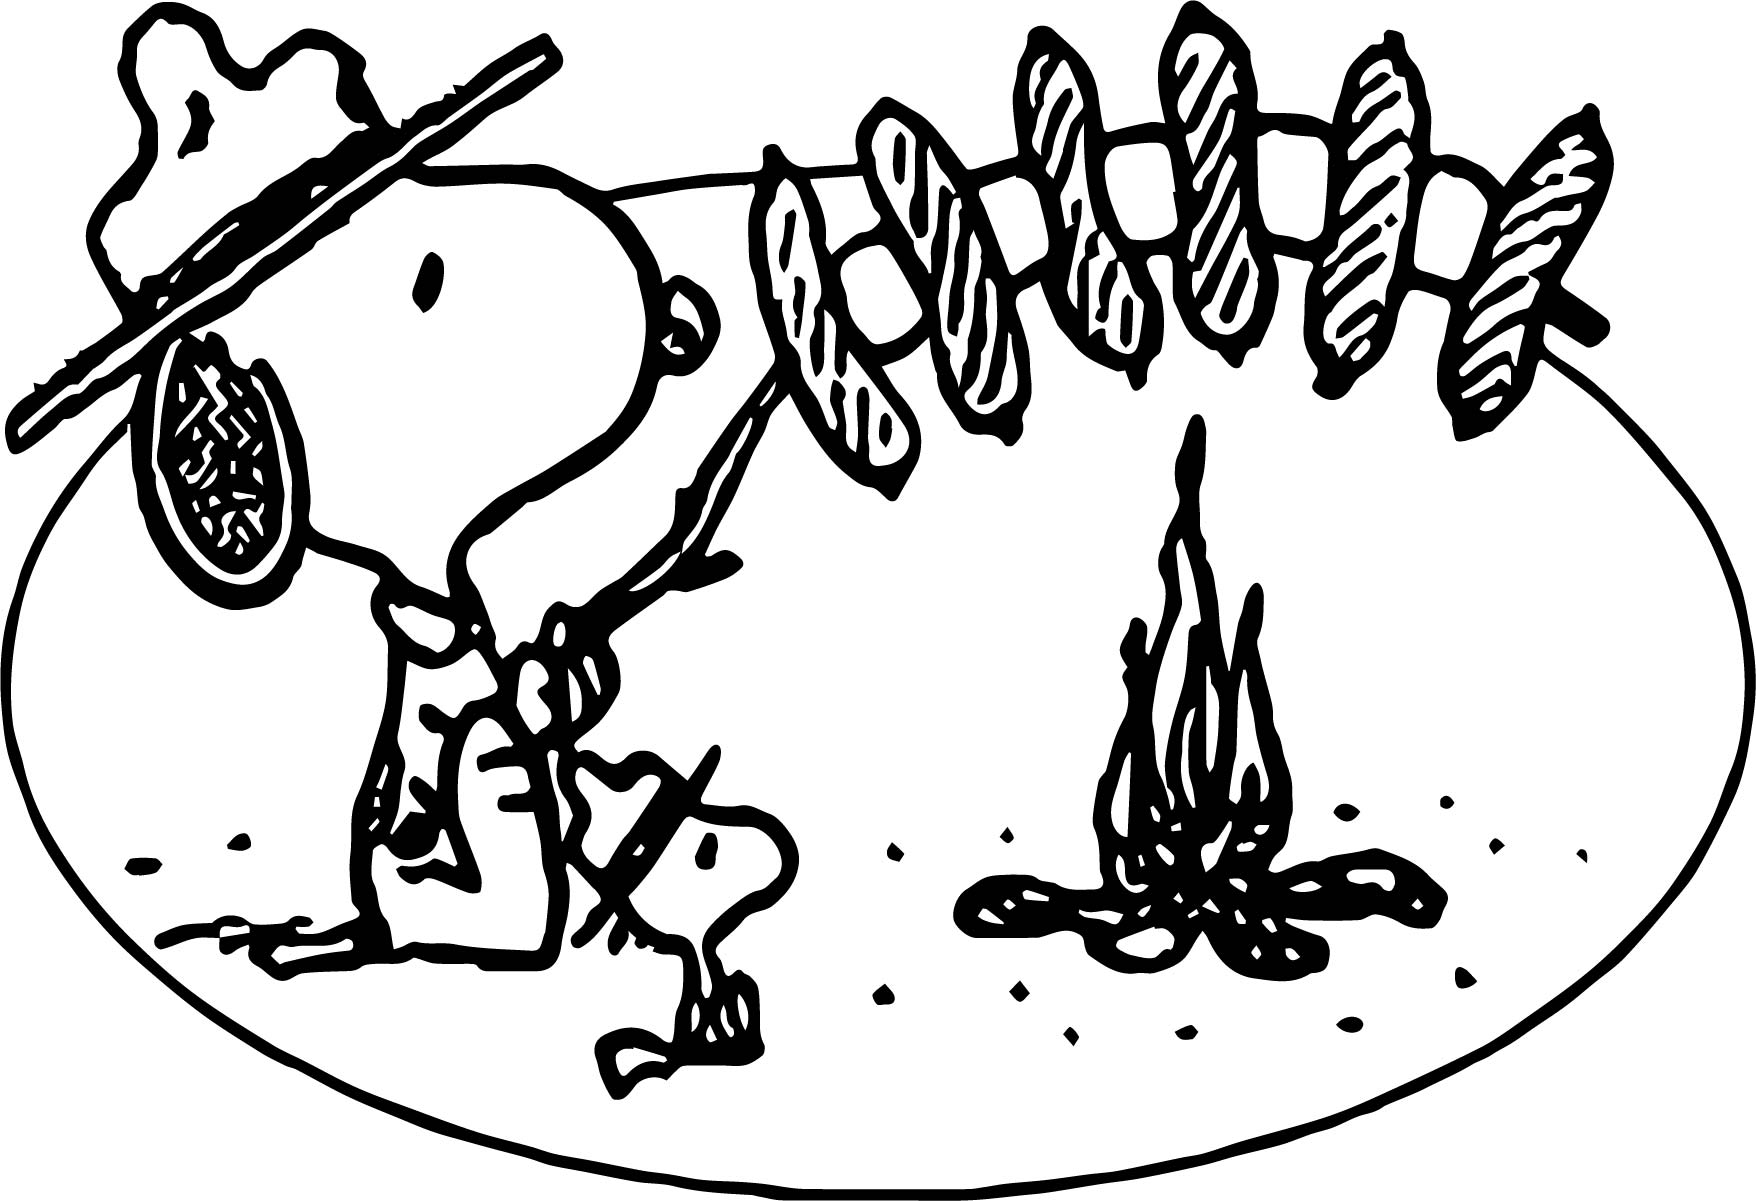 1756x1201 New Camping Lantern Coloring Page Kids Pages Rallytv Org